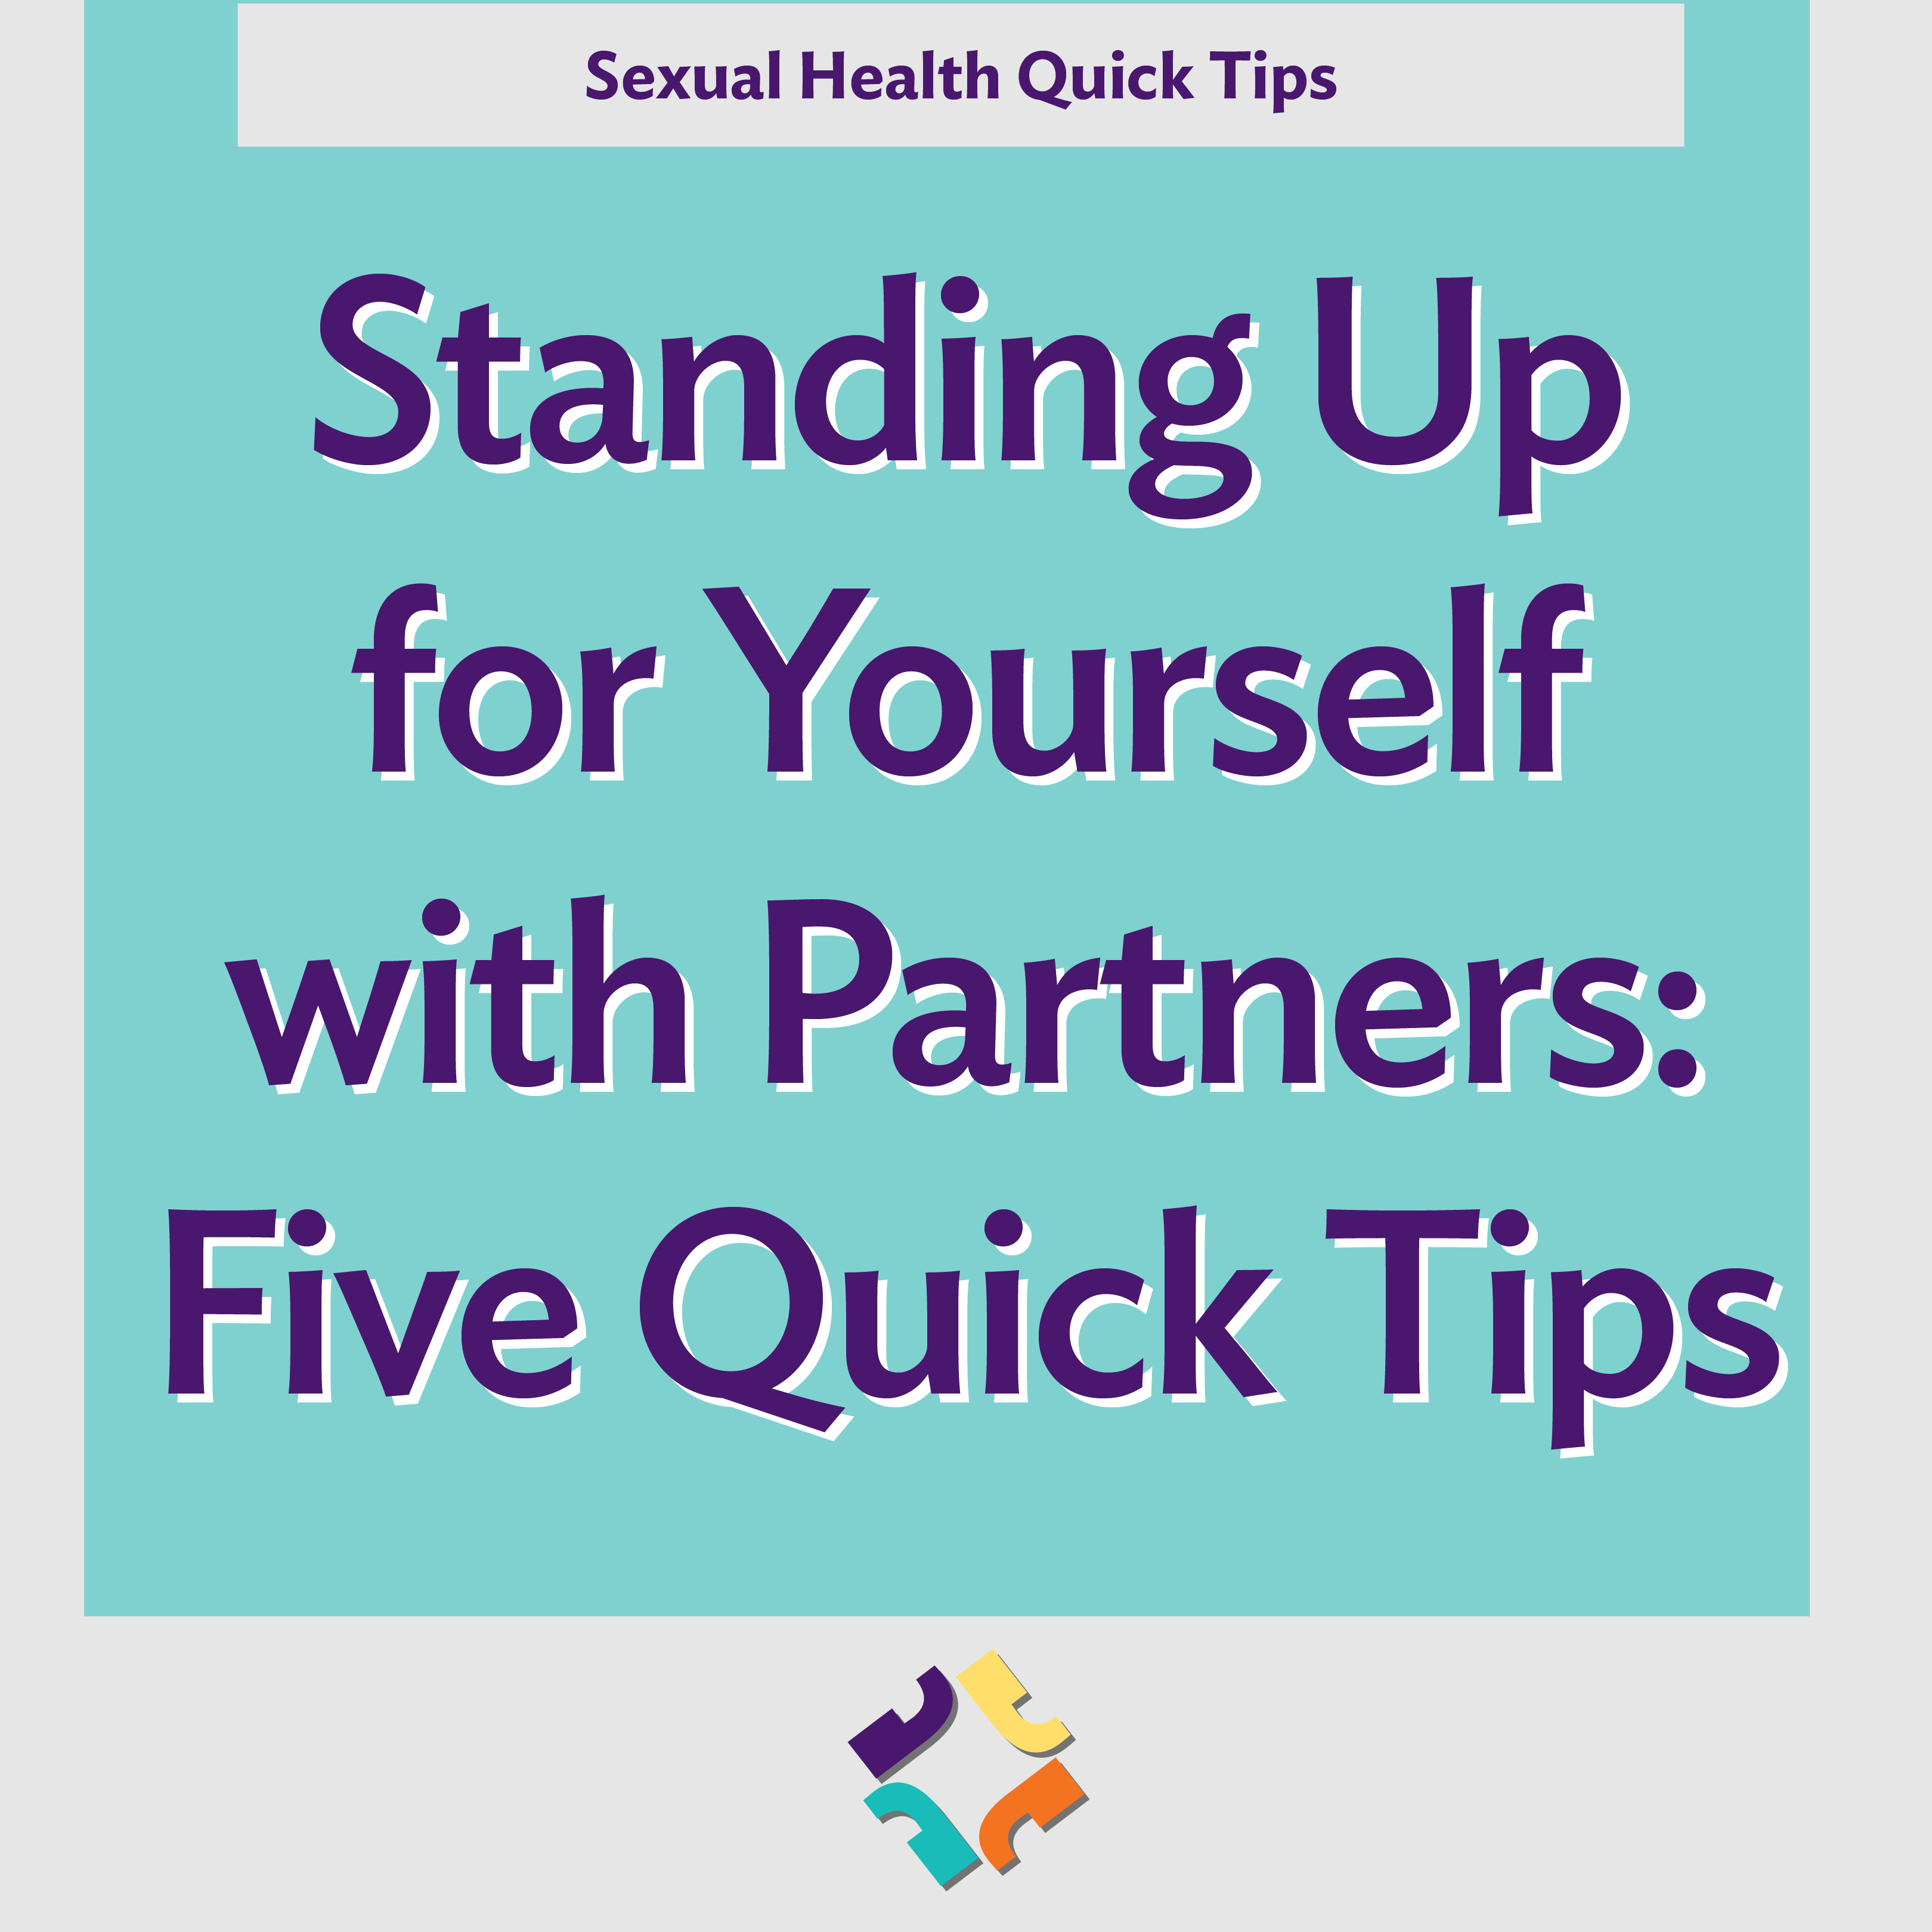 Standing Up for Yourself with Partners - Five Quick Tips